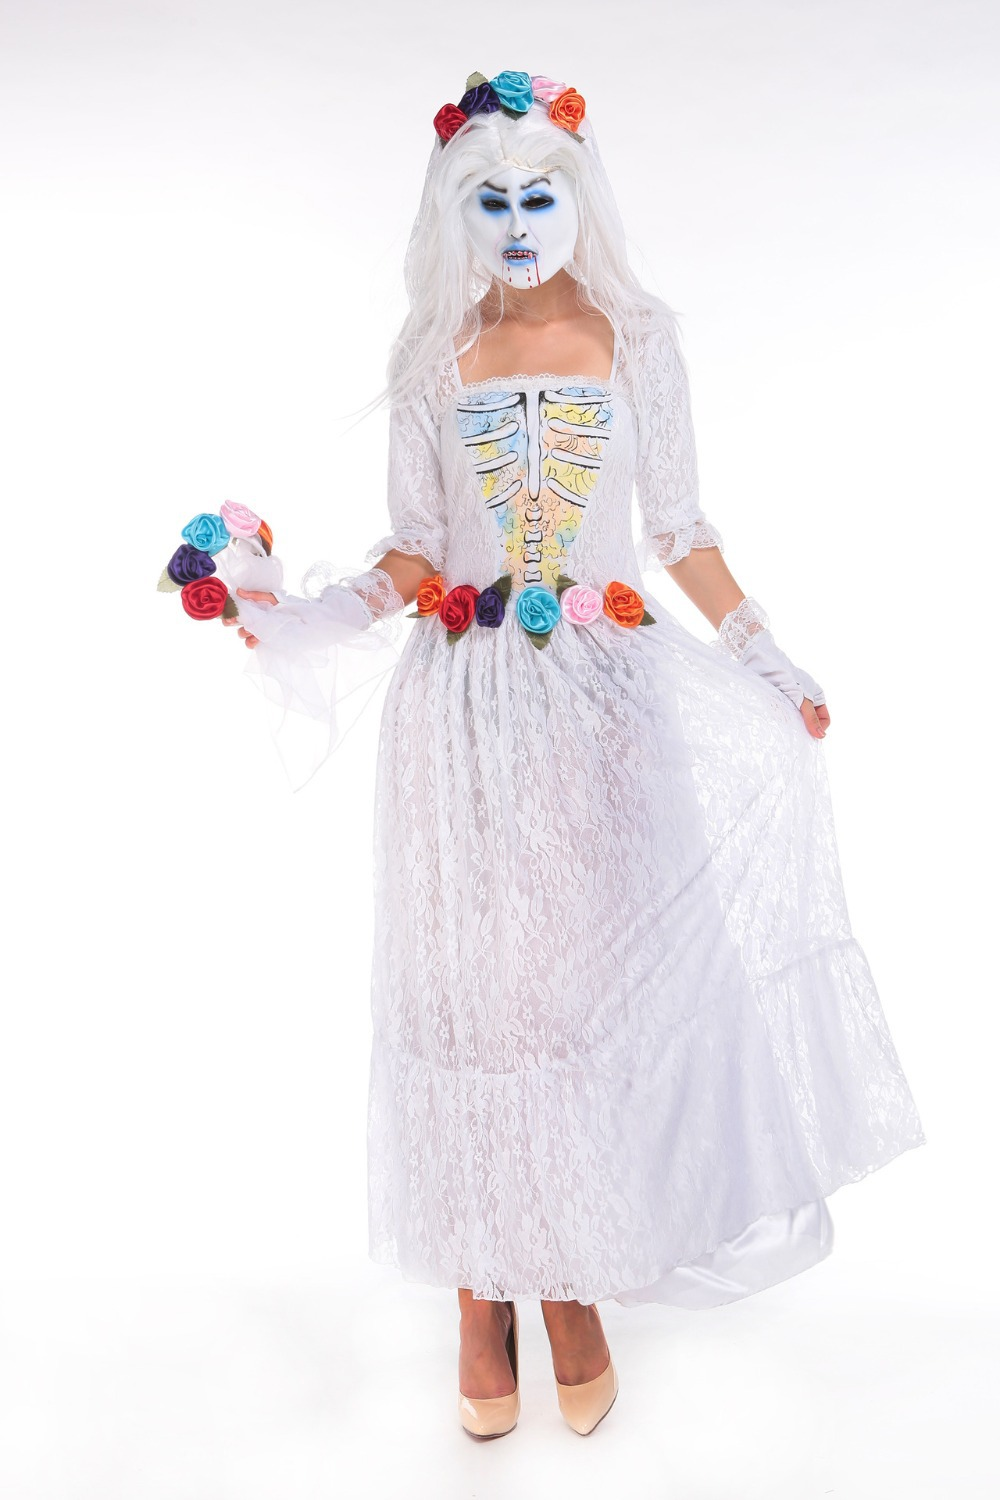 princess bride dress up costume wedding dress halloween costume Childrens Dress Up Bride Costume Wedding Ideas